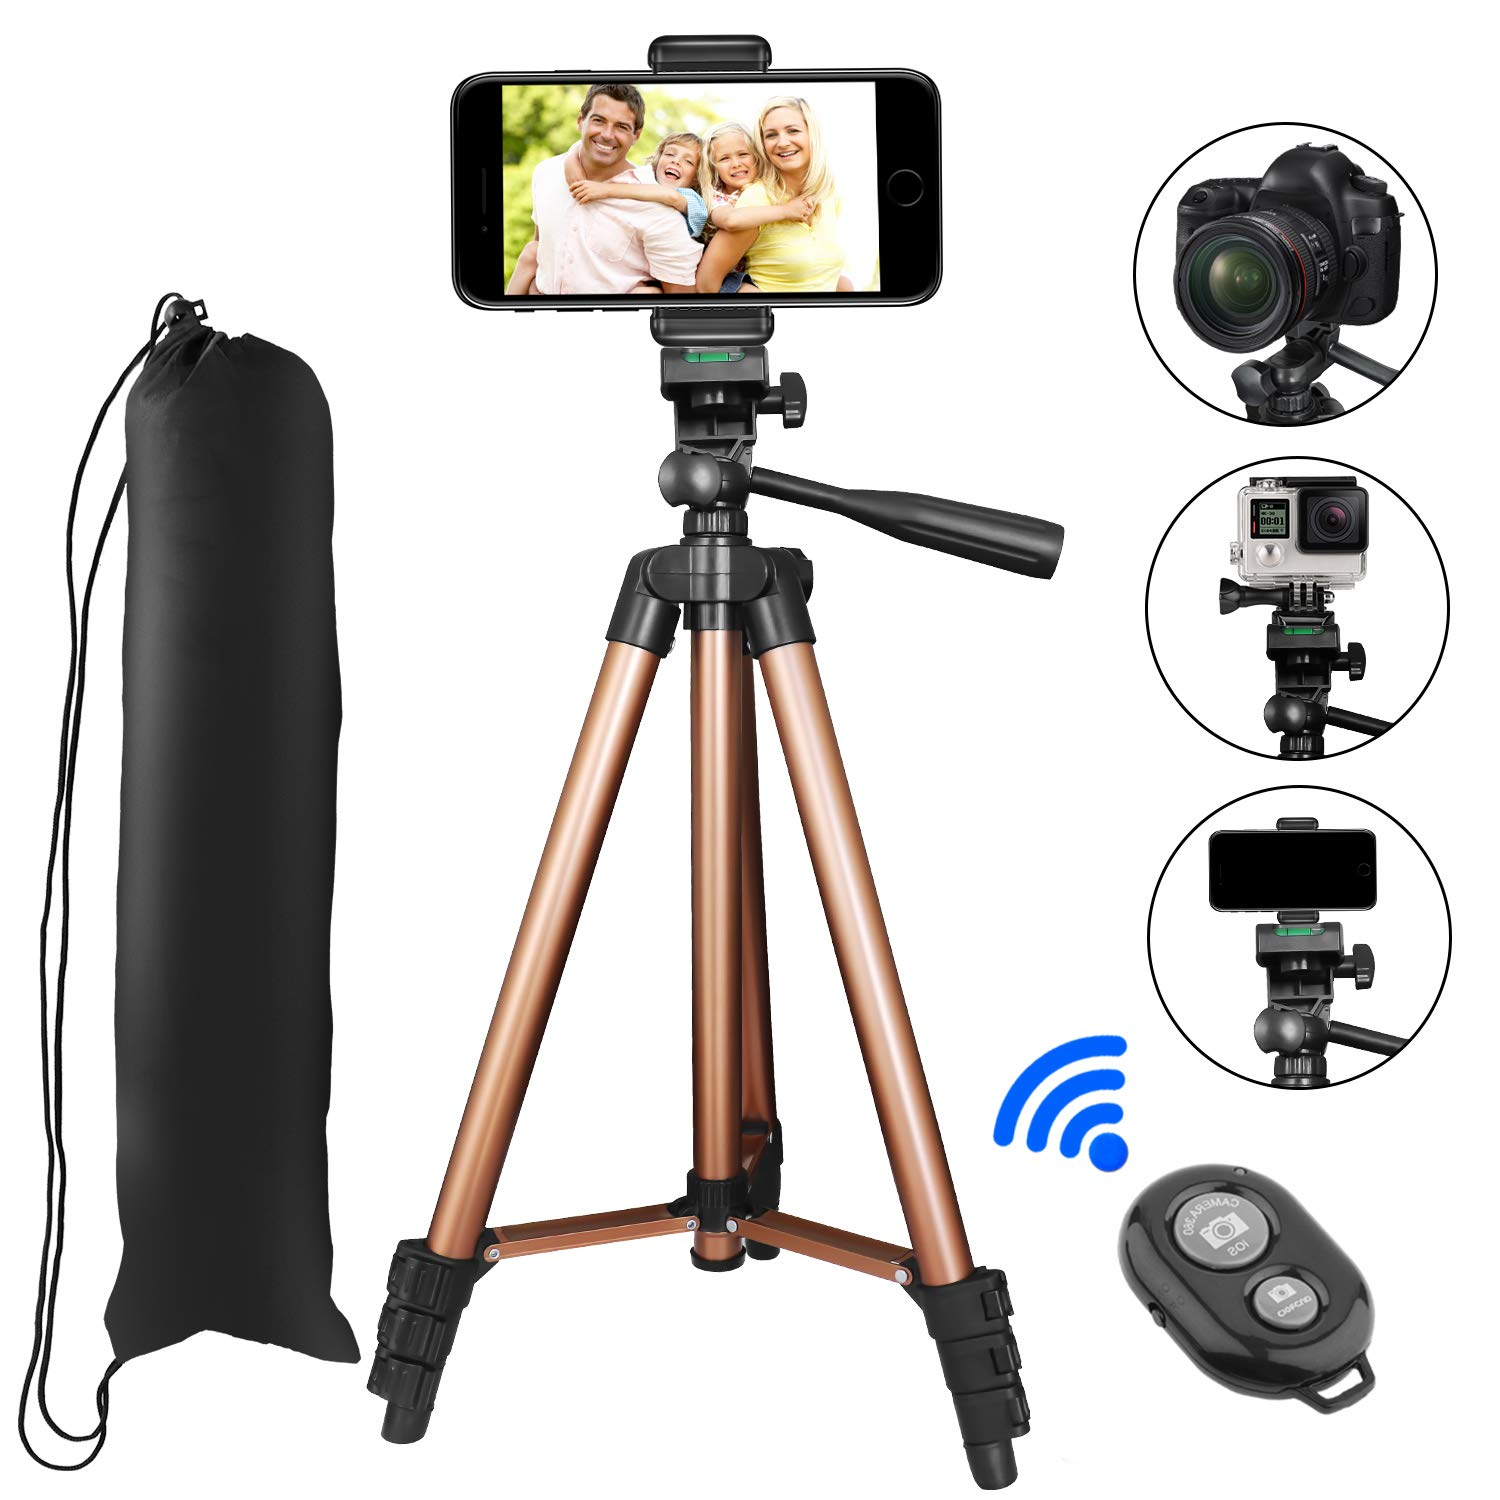 Phone Tripod, PEYOU 50'' Aluminum Camera Tripod + Bluetooth Wireless Remote Control Shutter + Universal Smartphone Holder Mount Compatible for iPhone X 8 Plus 7 6 6s Plus,Galaxy Note 8 S9 S8 Plus S7 S6 by Peyou